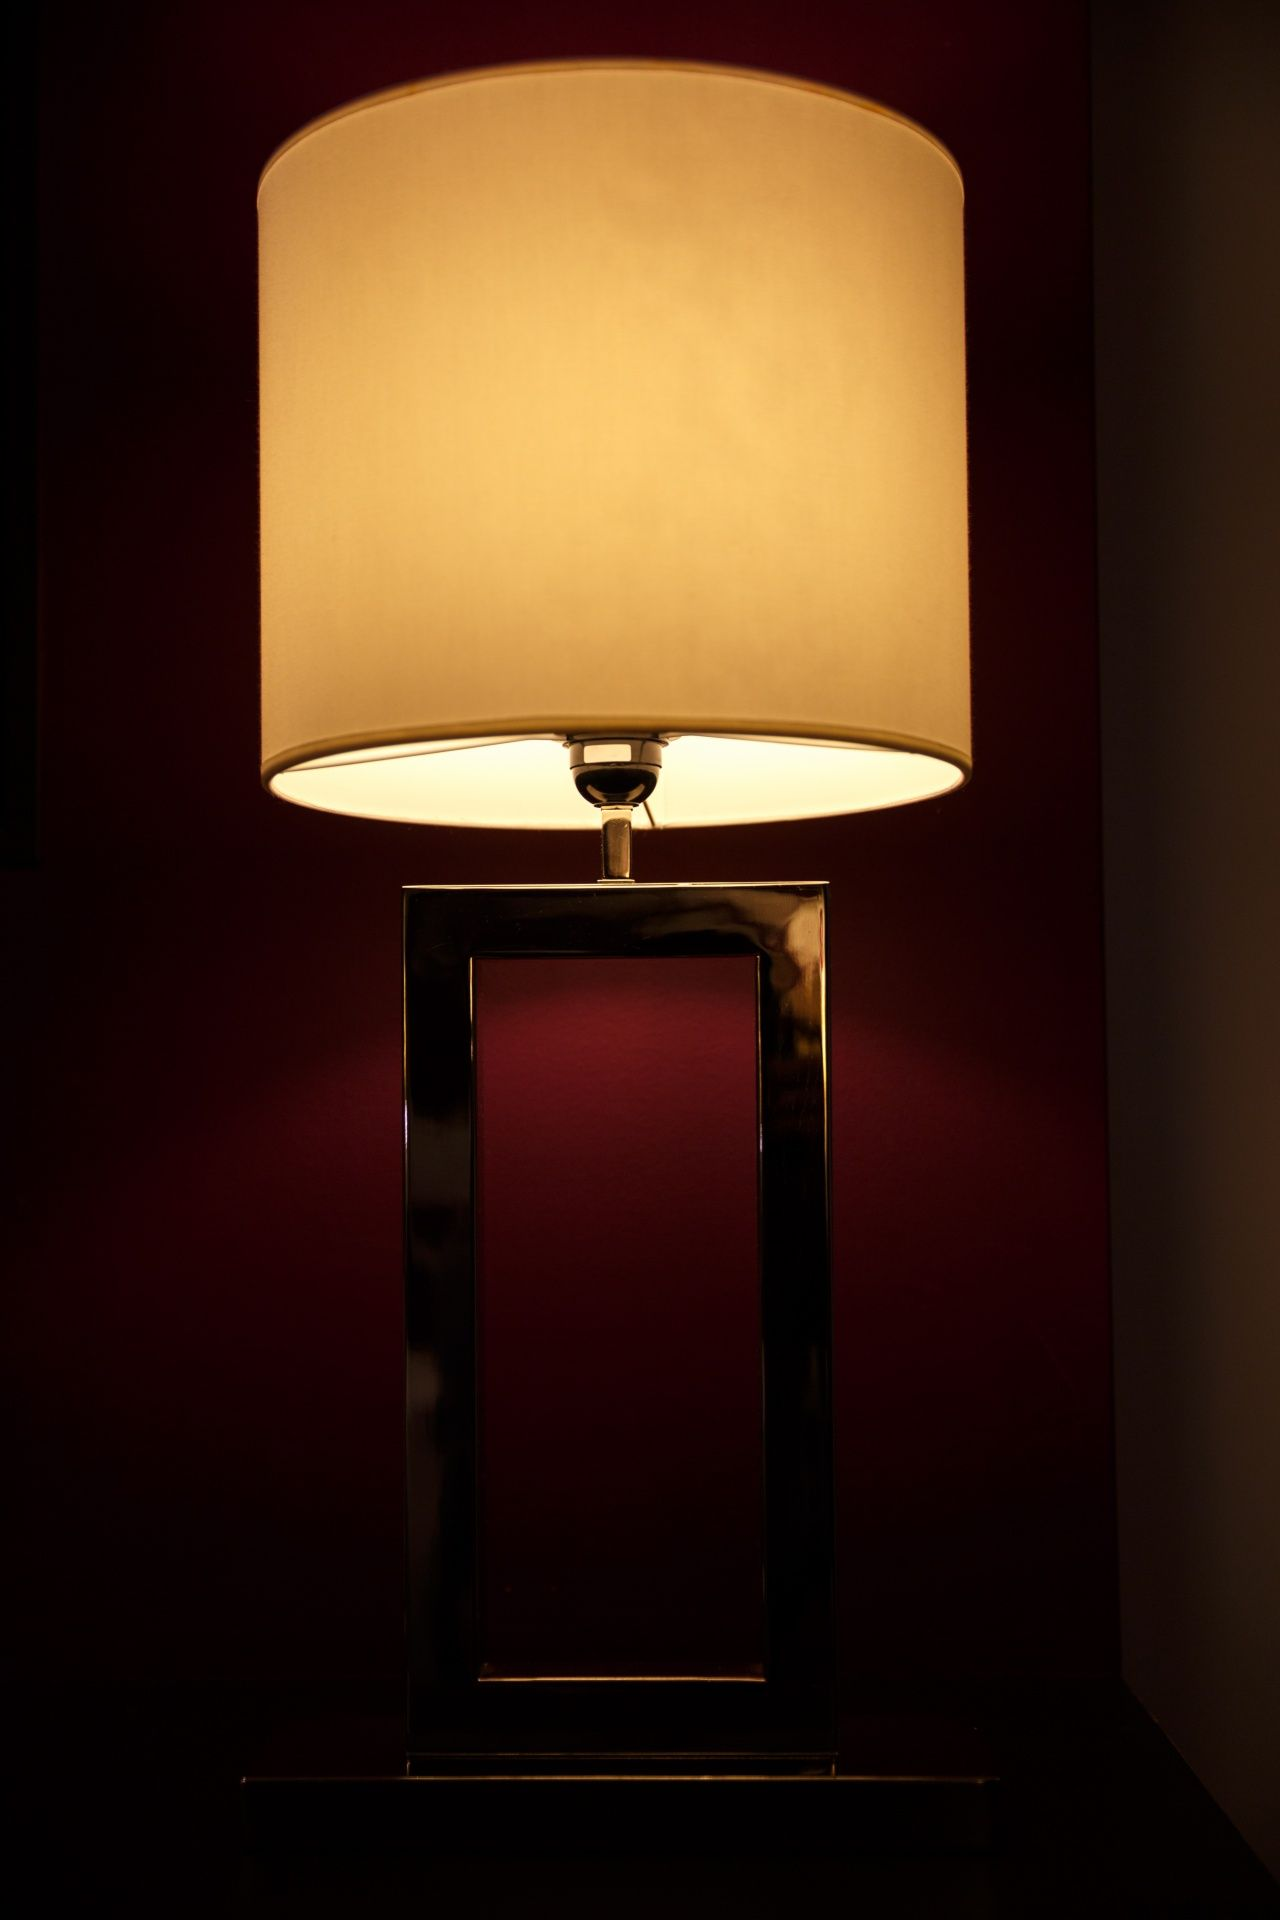 Beautiful Table Lamp Images Download Free High Quality Beautiful